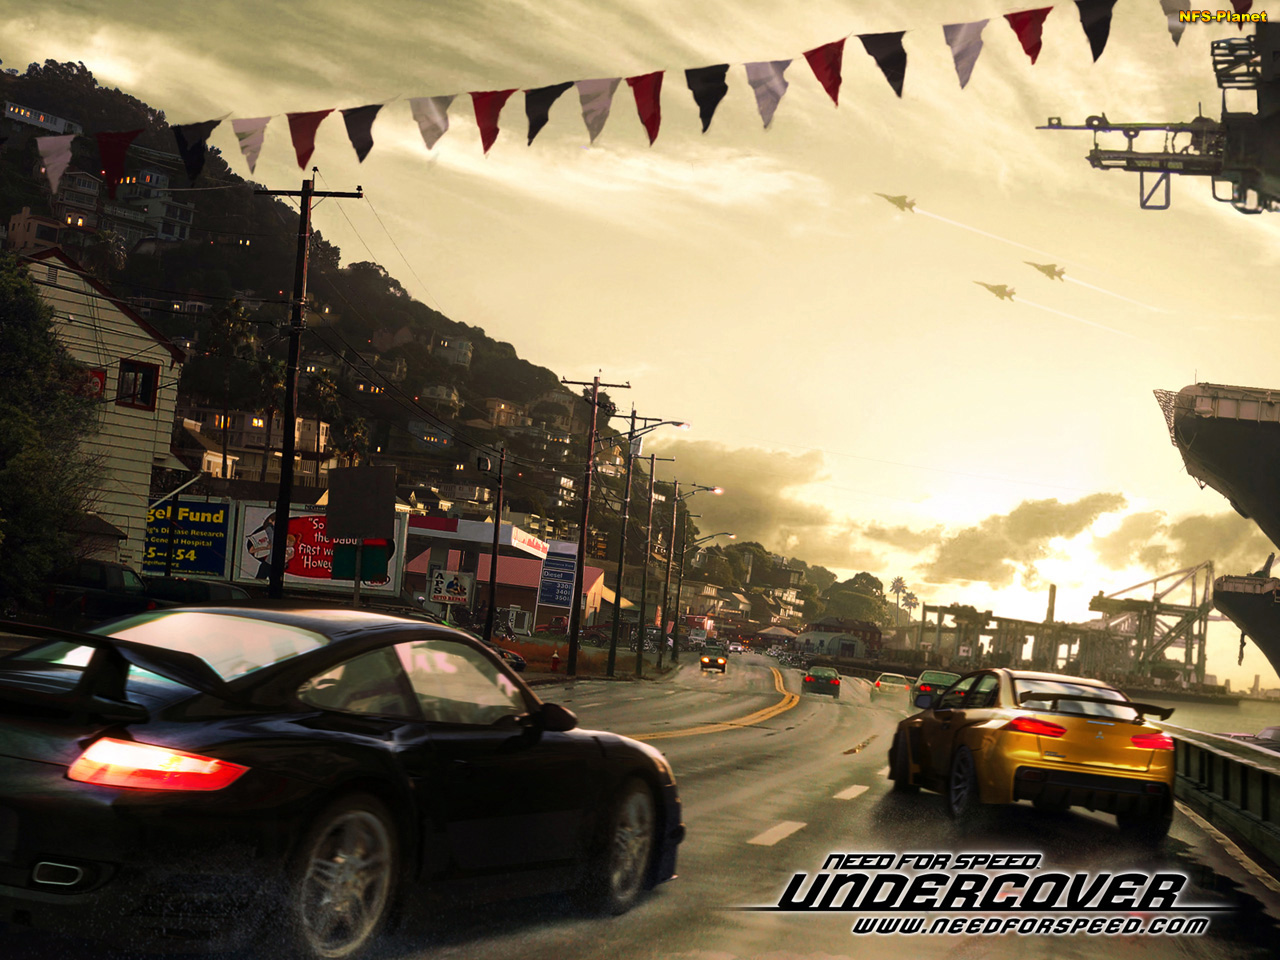 Need For Speed Undercover - обои из игры